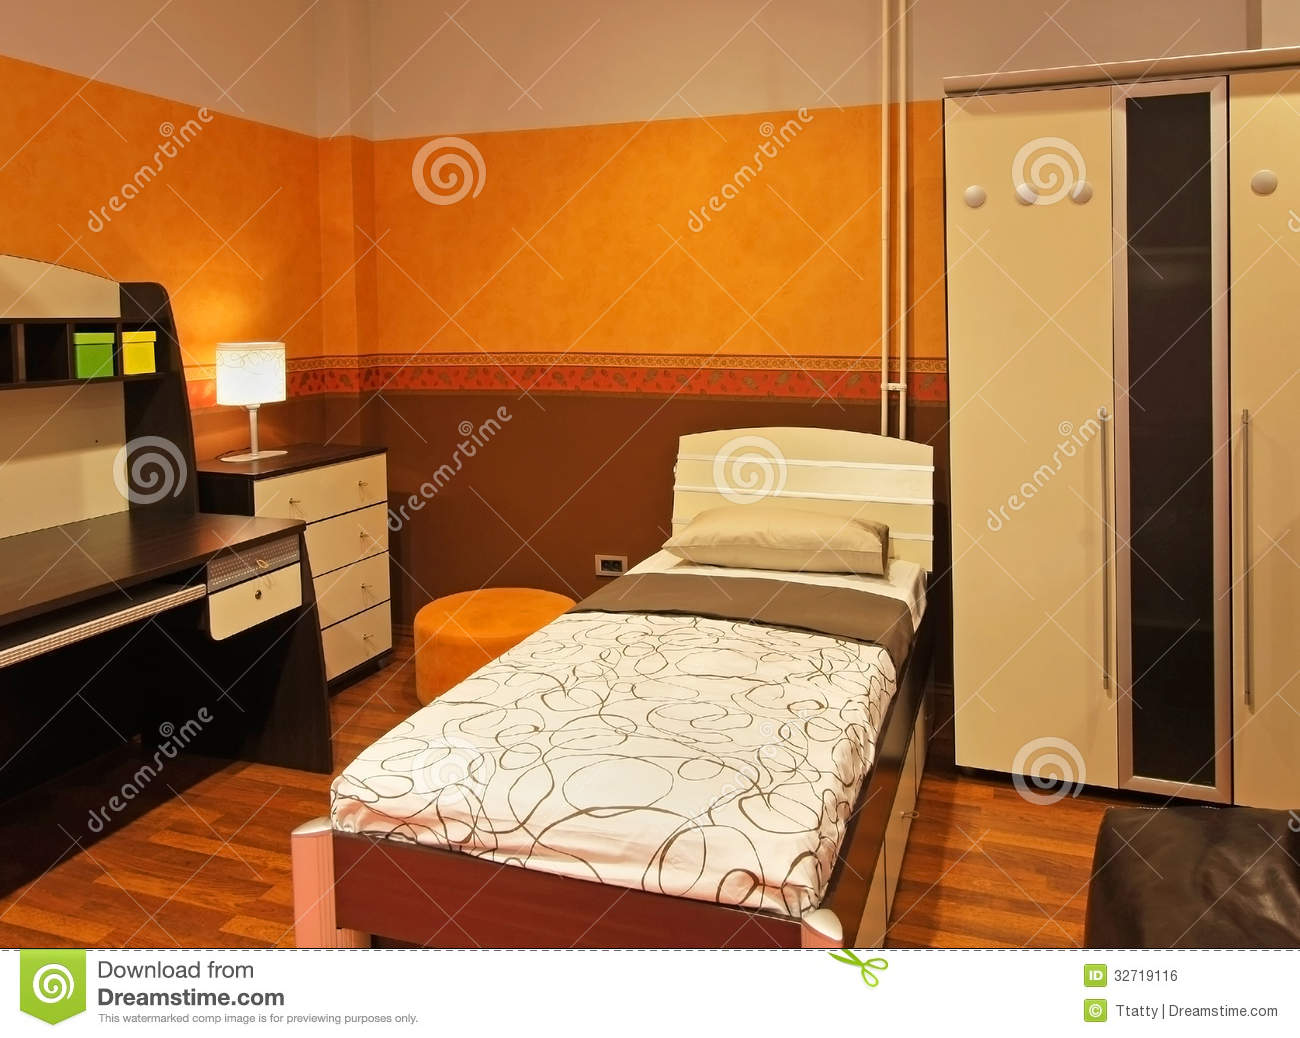 orange child bedroom royalty free stock image image